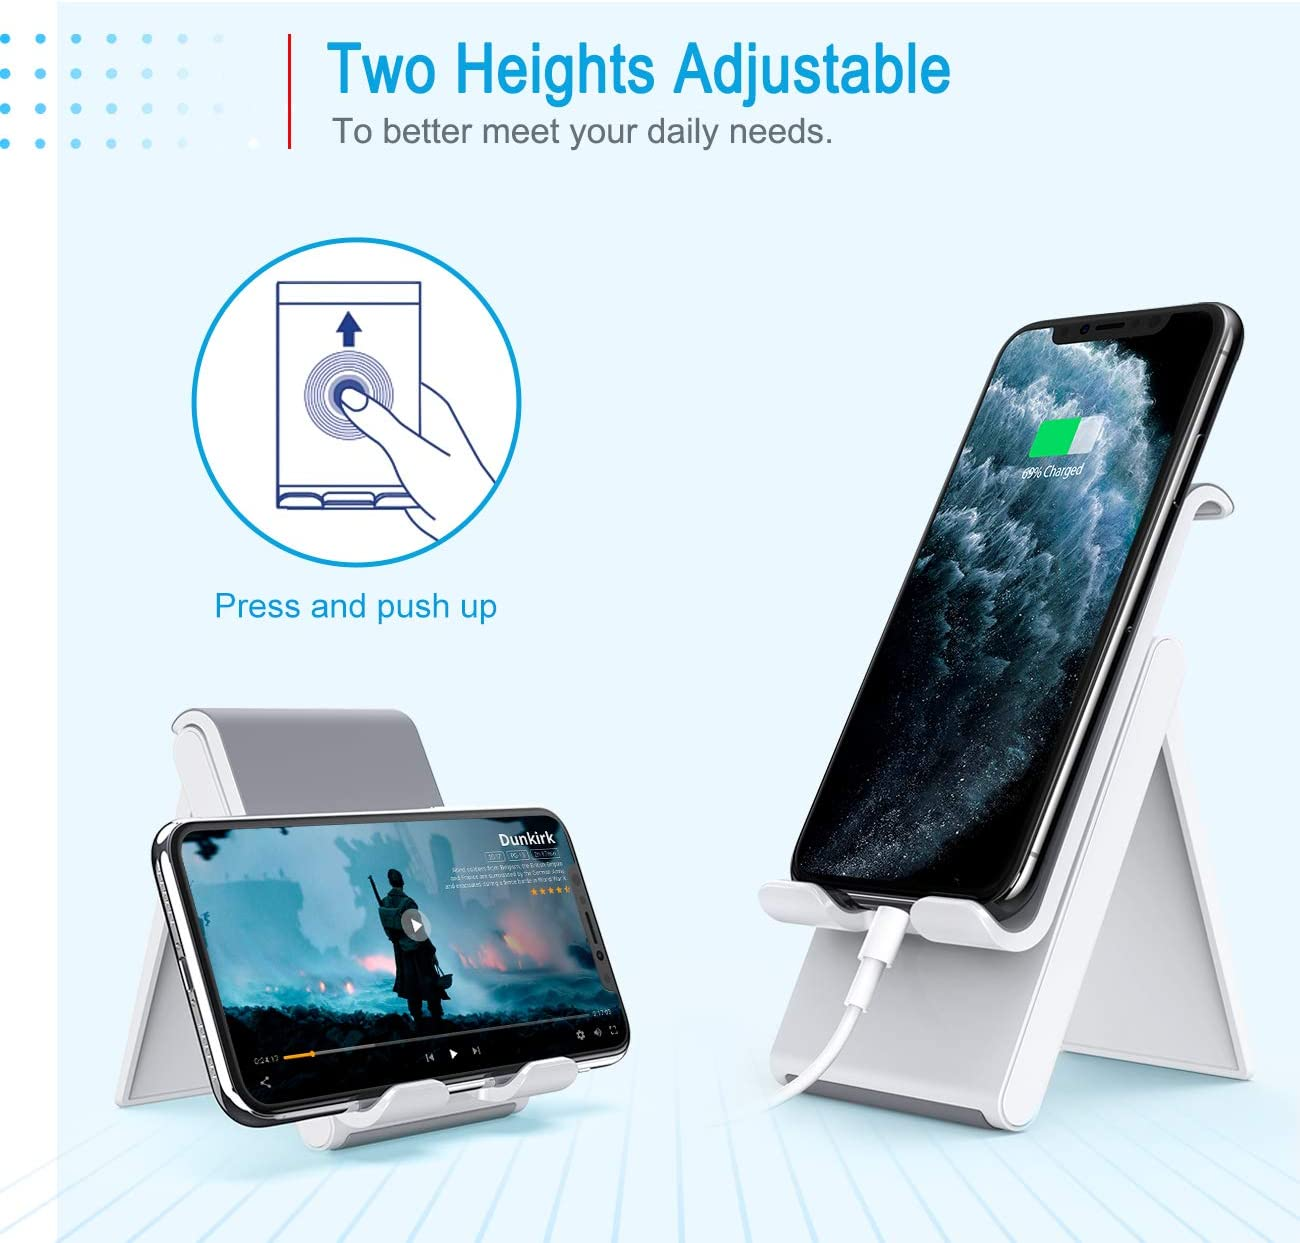 Lamicall Adjustable Cell Phone Stand Desktop Charging Dock Compatible with Phone 11 Pro XS Max XR X 8 7 6S Plus Samsung Galaxy S10 S9 S8 Smartphones Foldable Portable Holder Cradle for Desk Black